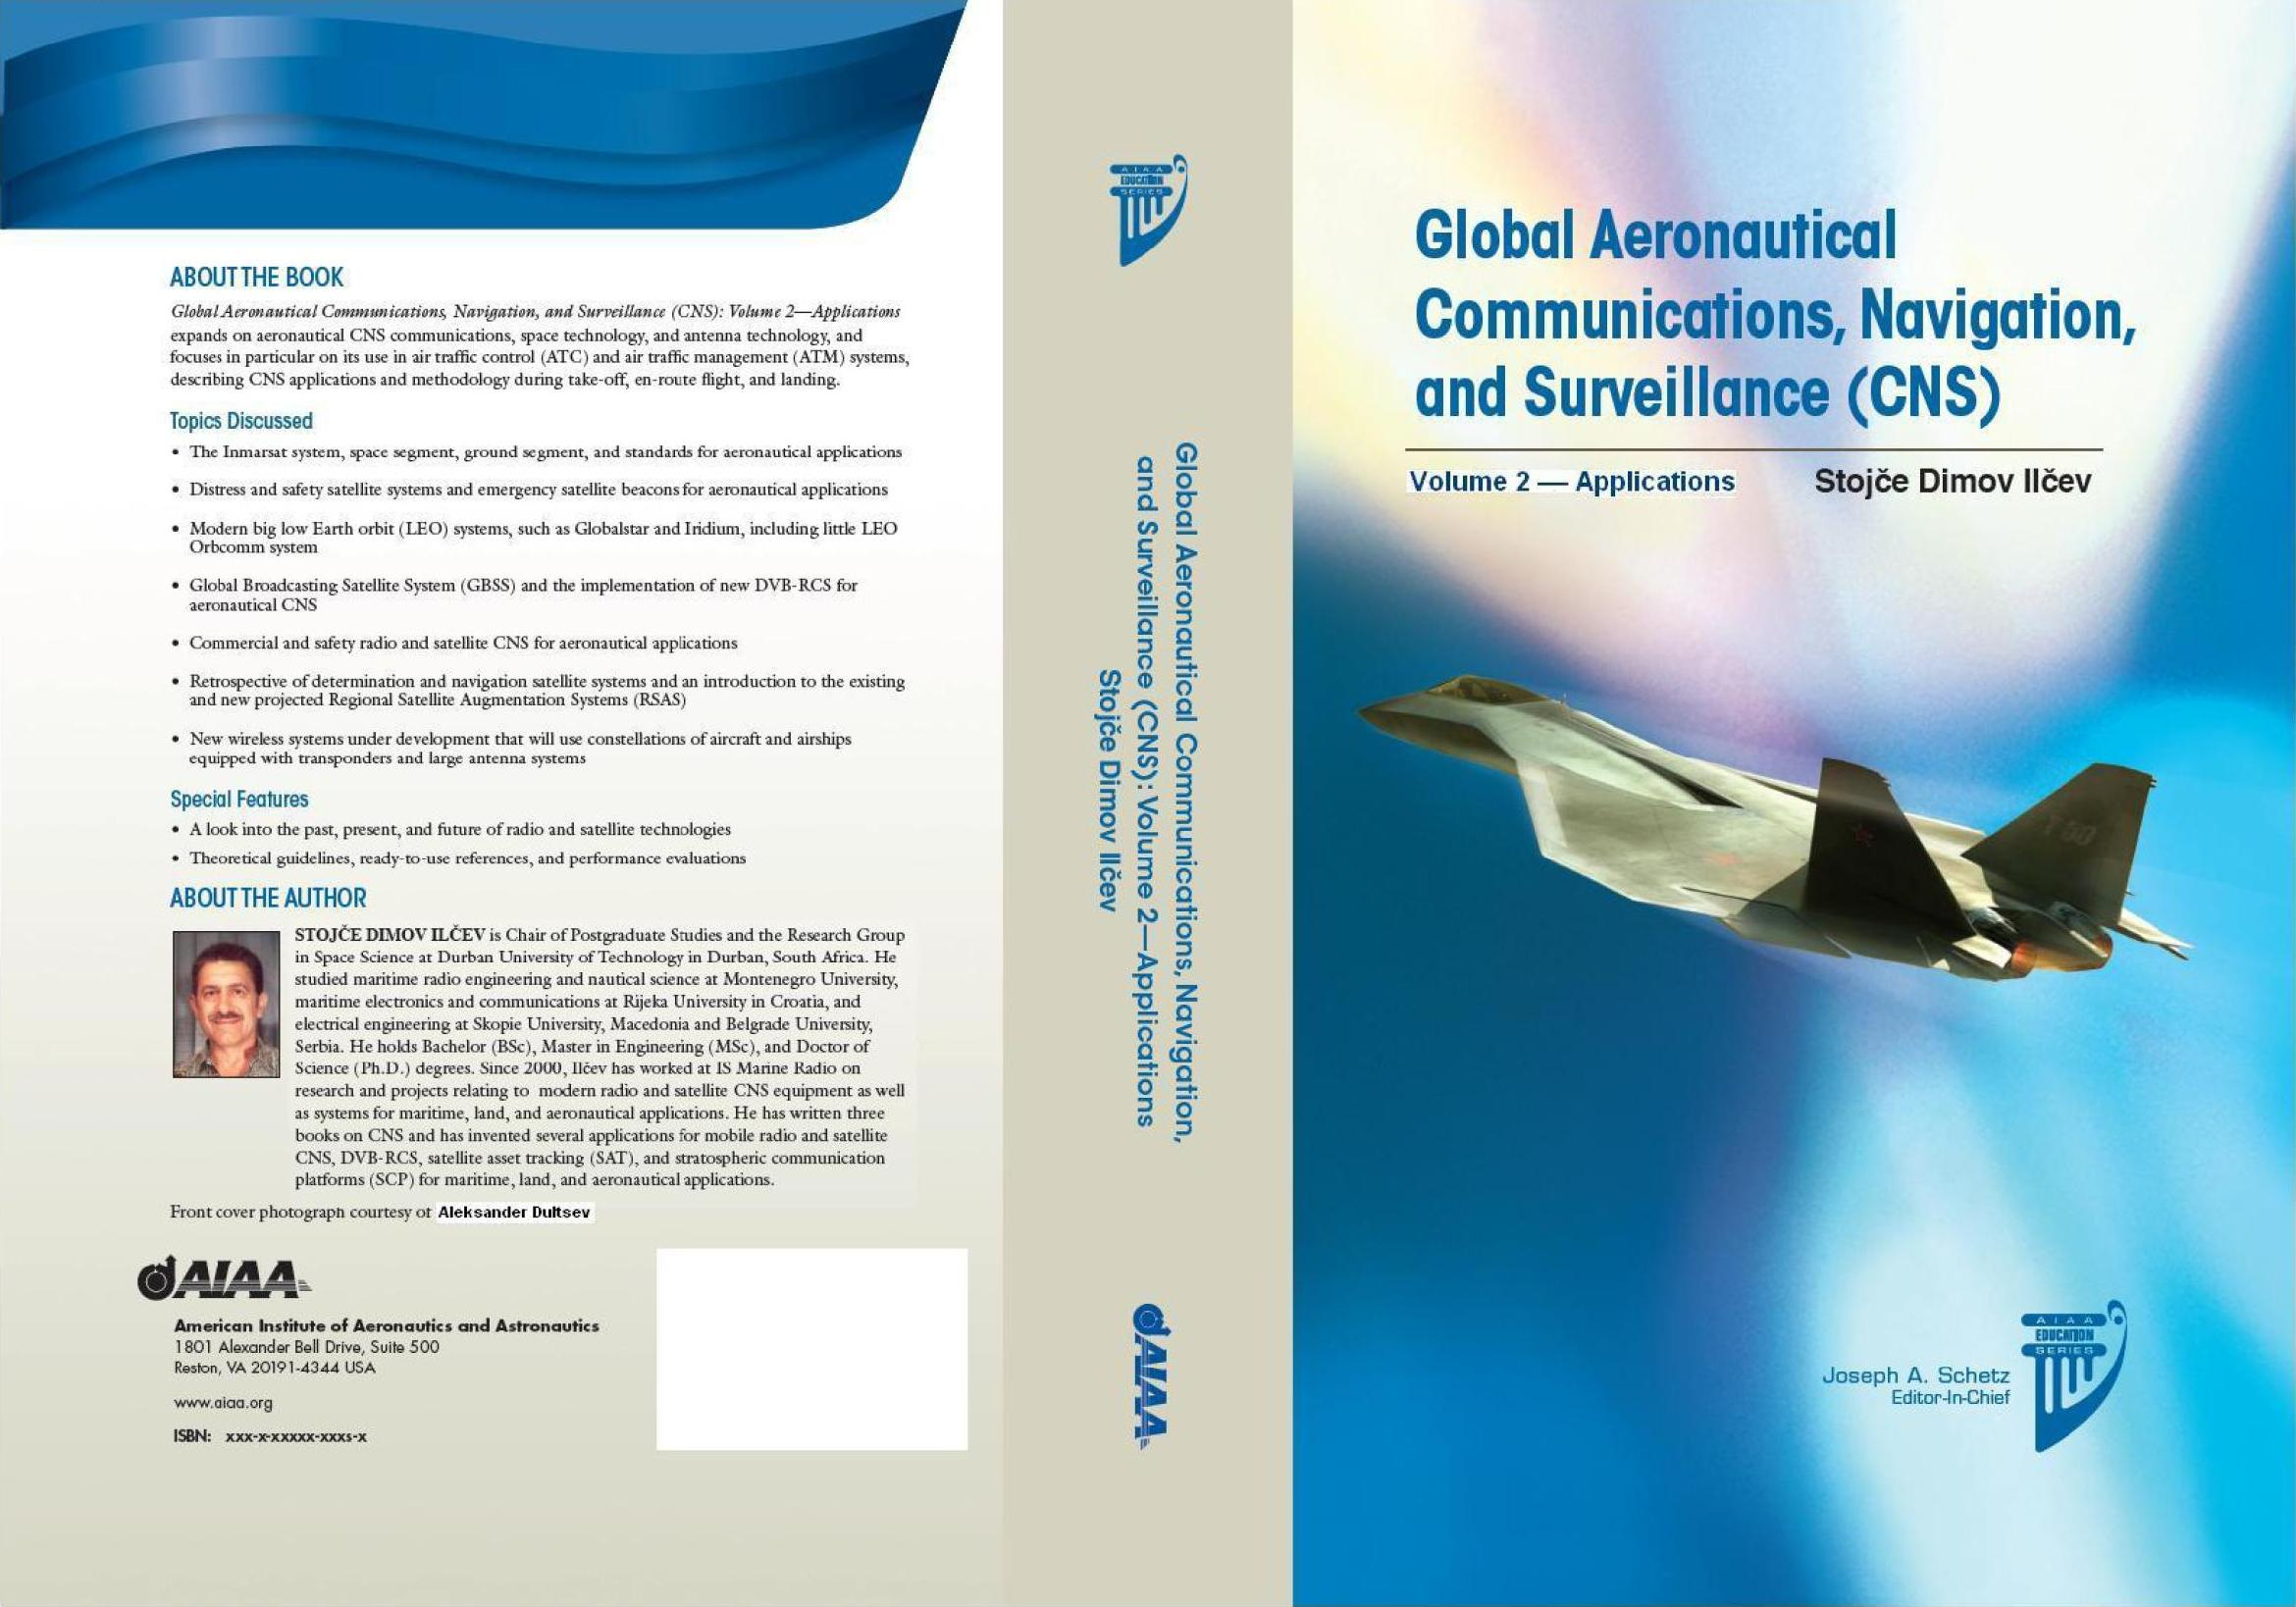 5th Book of Prof. Ilcev as only Author Published in 2013